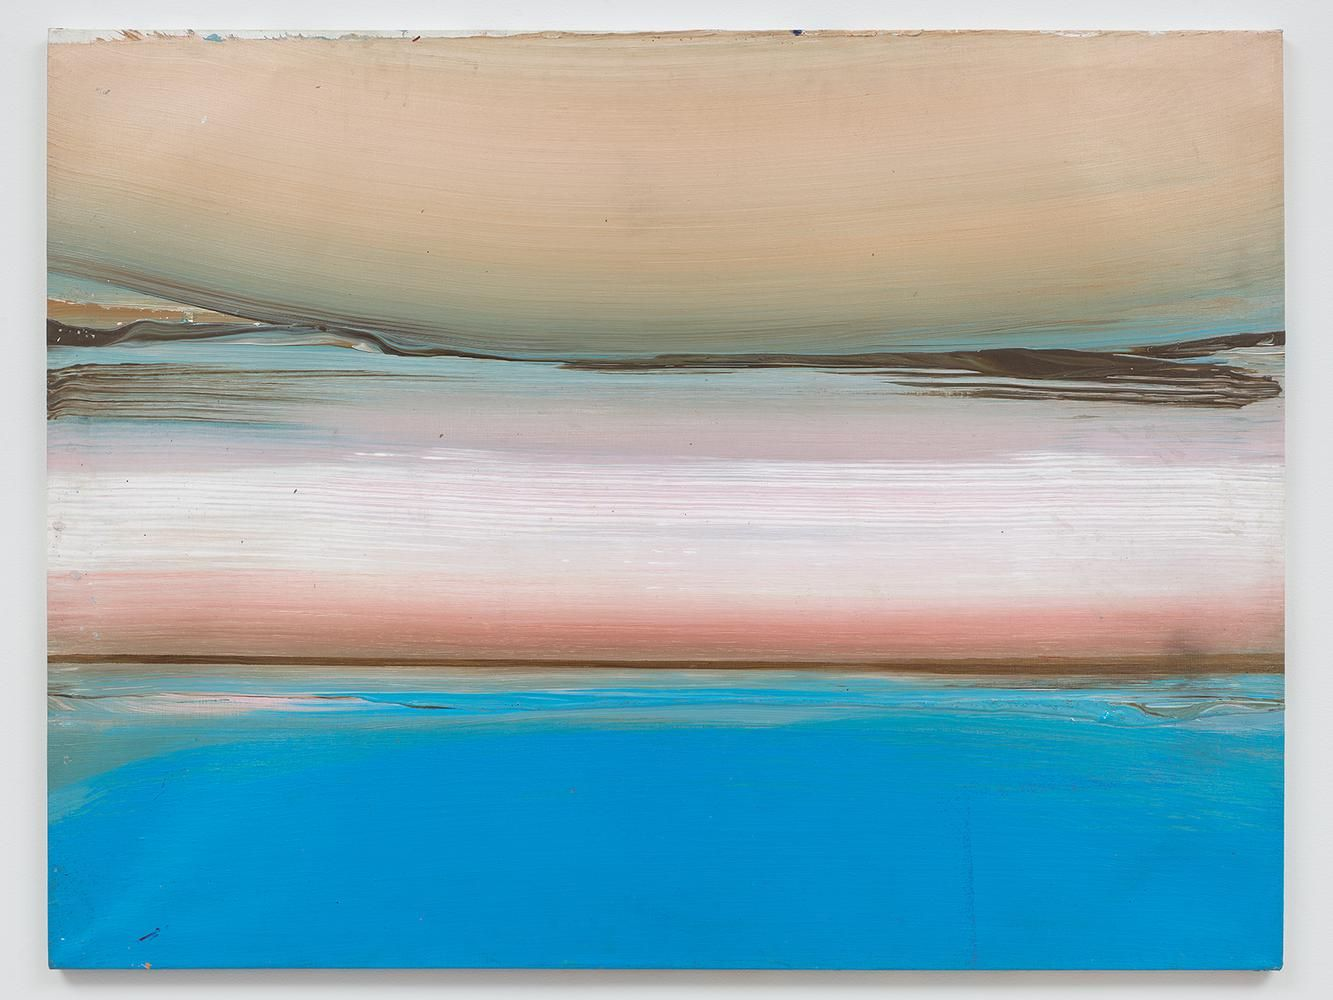 Ed Clark Untitled (Bahia Series) 1991 acrylic on canvas 38 x 50 inches (95.3 x 127 cm)